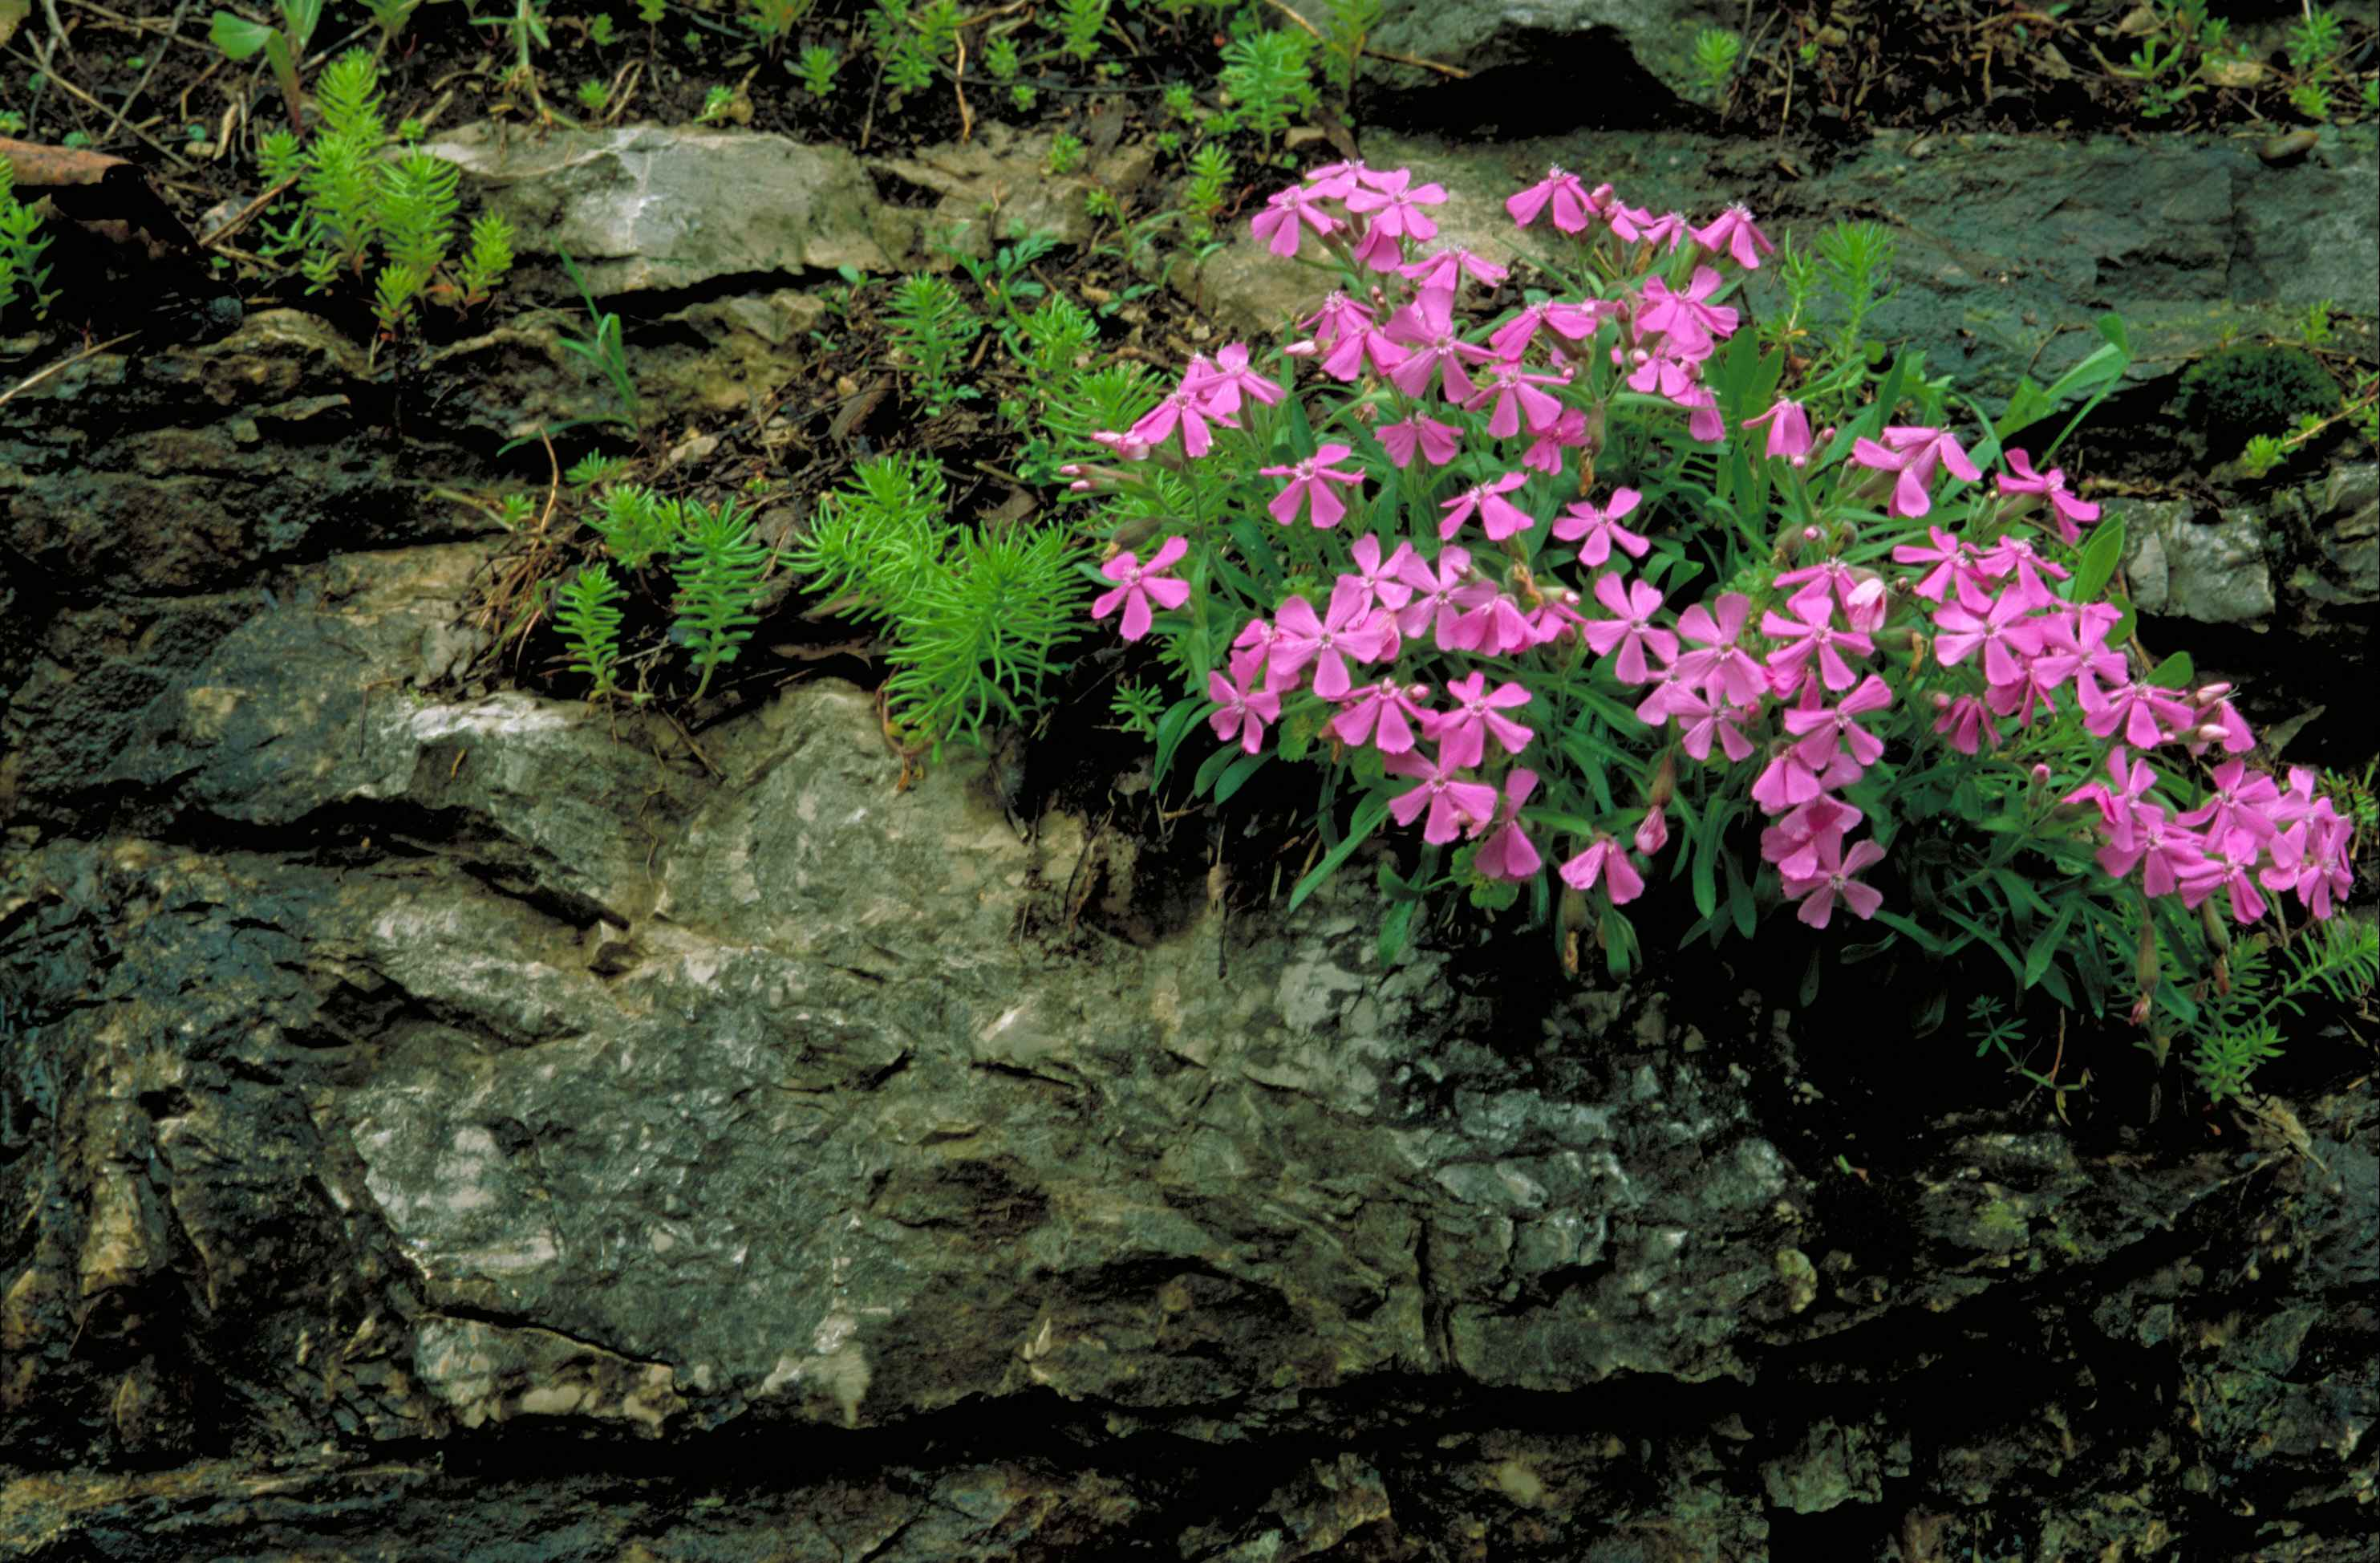 Filecarolina wild pink flower blossoms in rocks and mossg filecarolina wild pink flower blossoms in rocks and mossg mightylinksfo